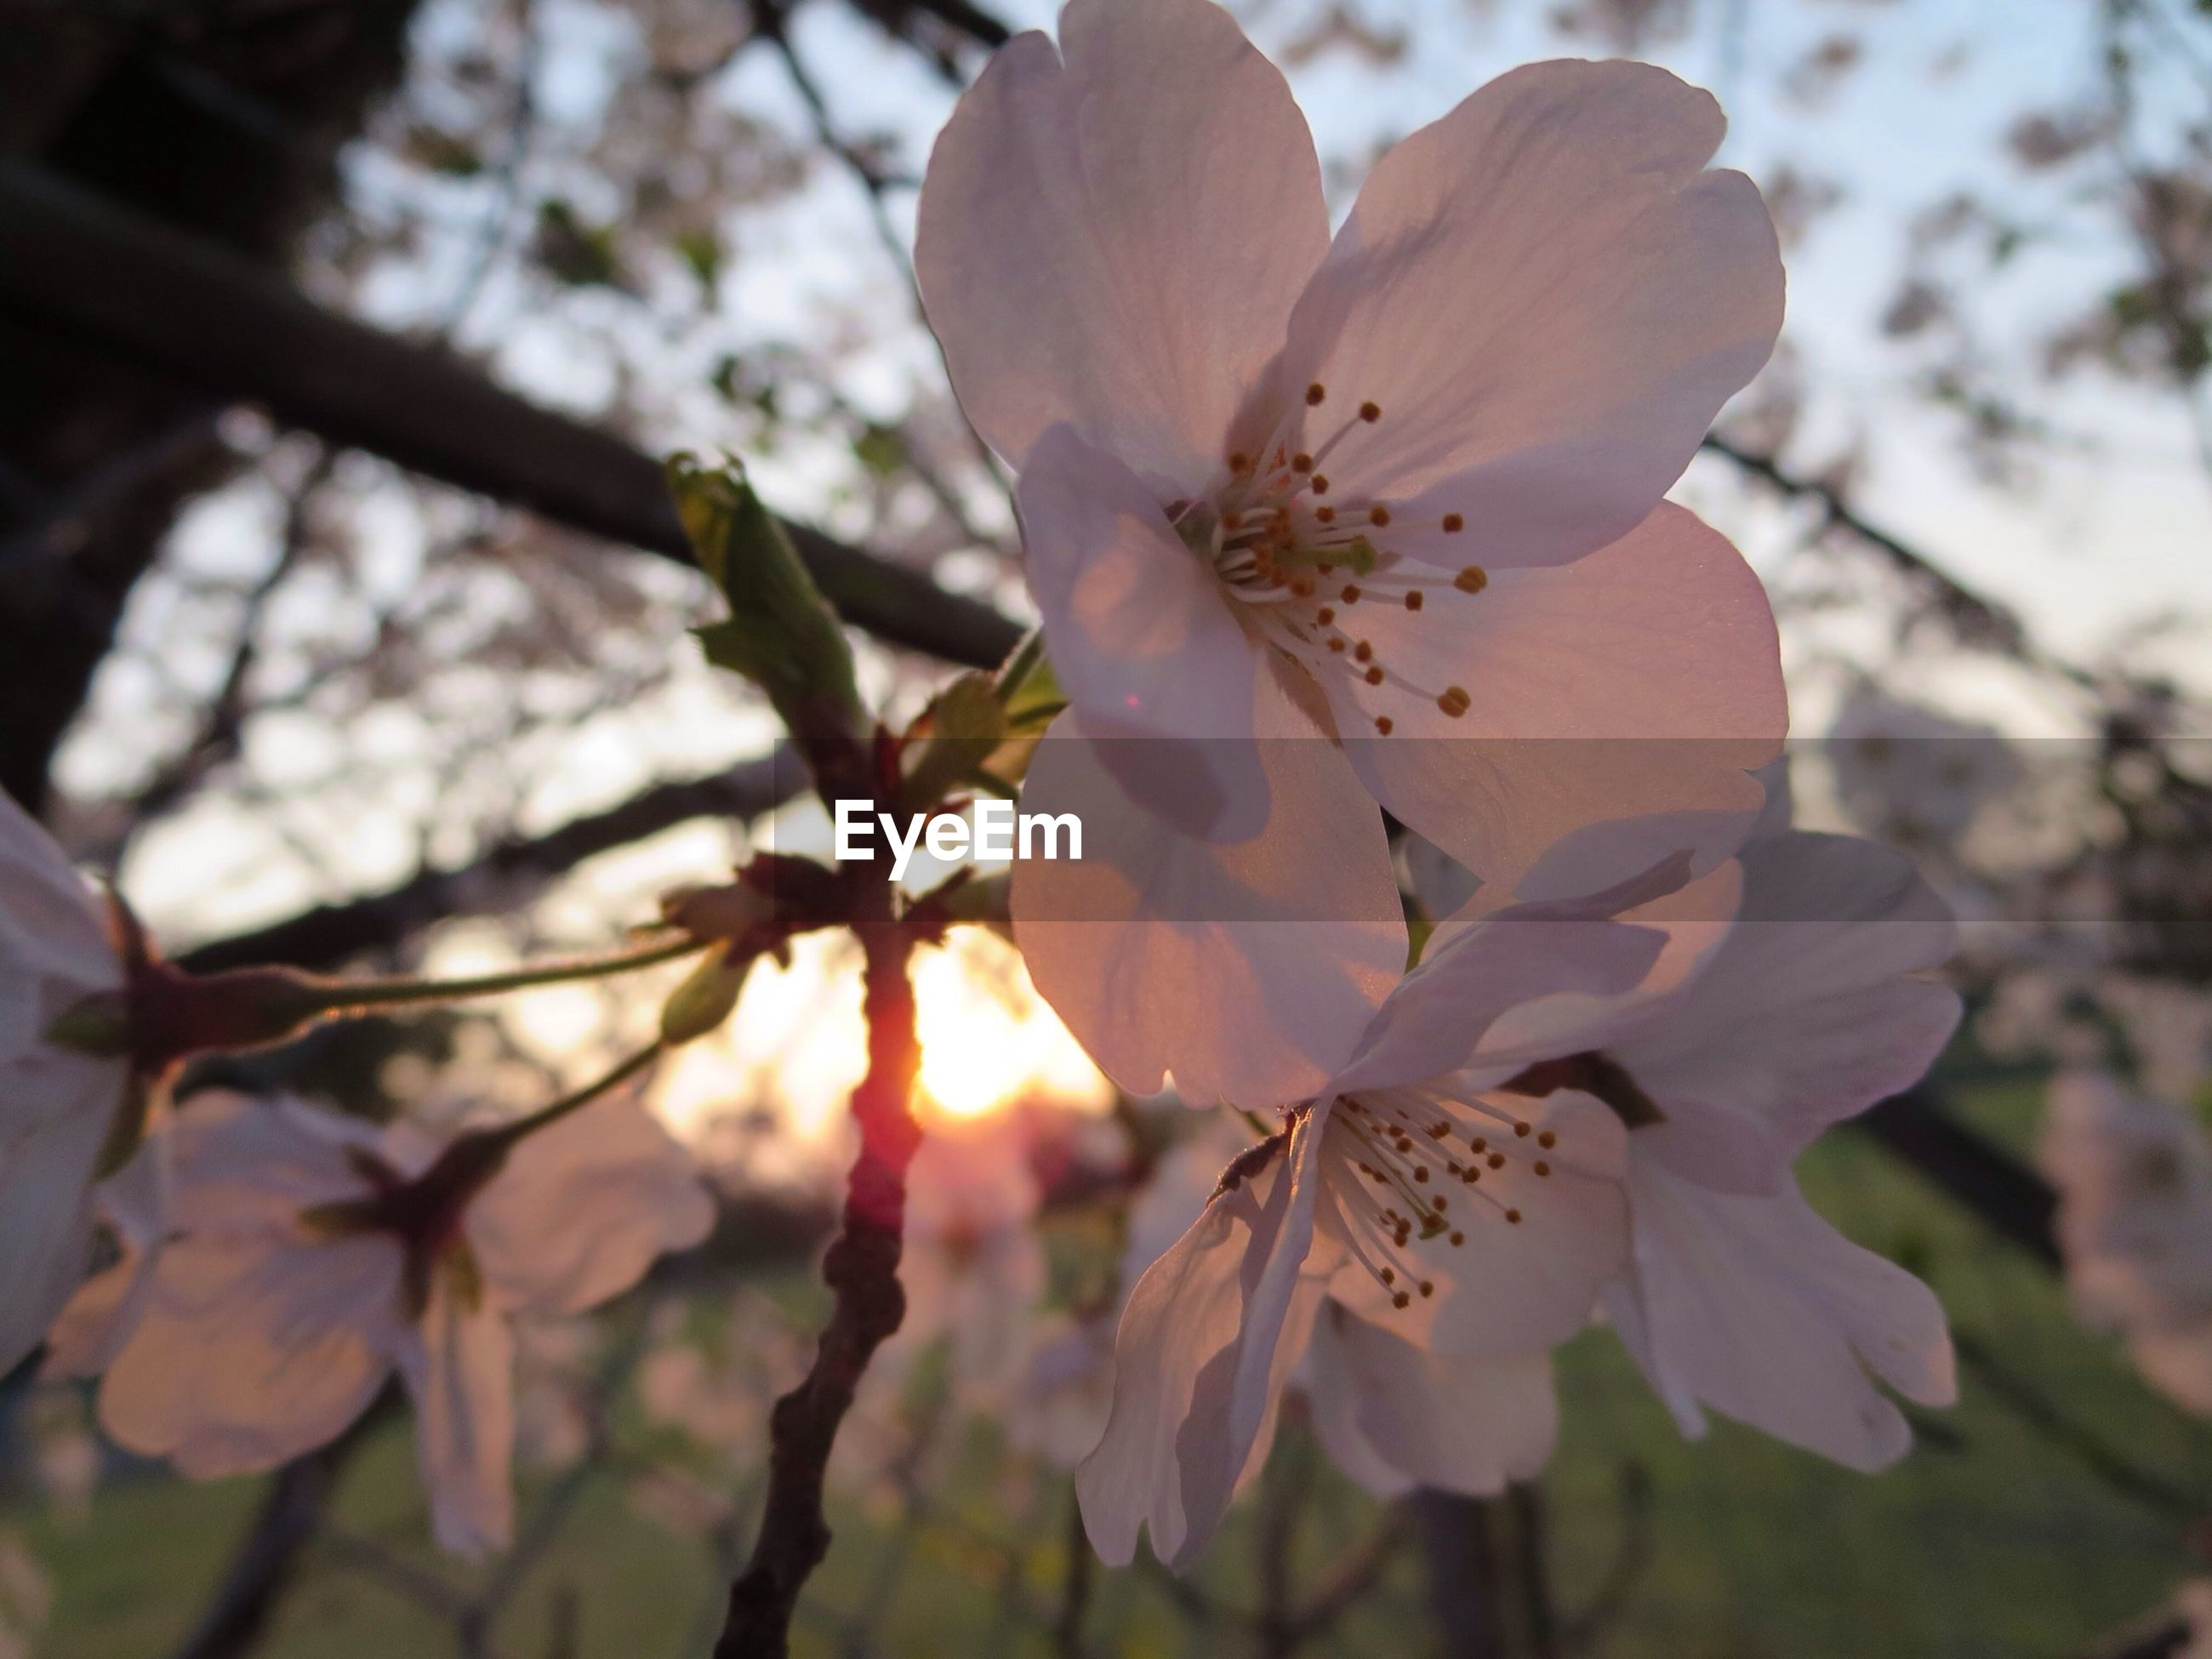 flower, freshness, fragility, petal, growth, low angle view, beauty in nature, nature, branch, focus on foreground, close-up, tree, flower head, blooming, in bloom, blossom, sunlight, stamen, pollen, day